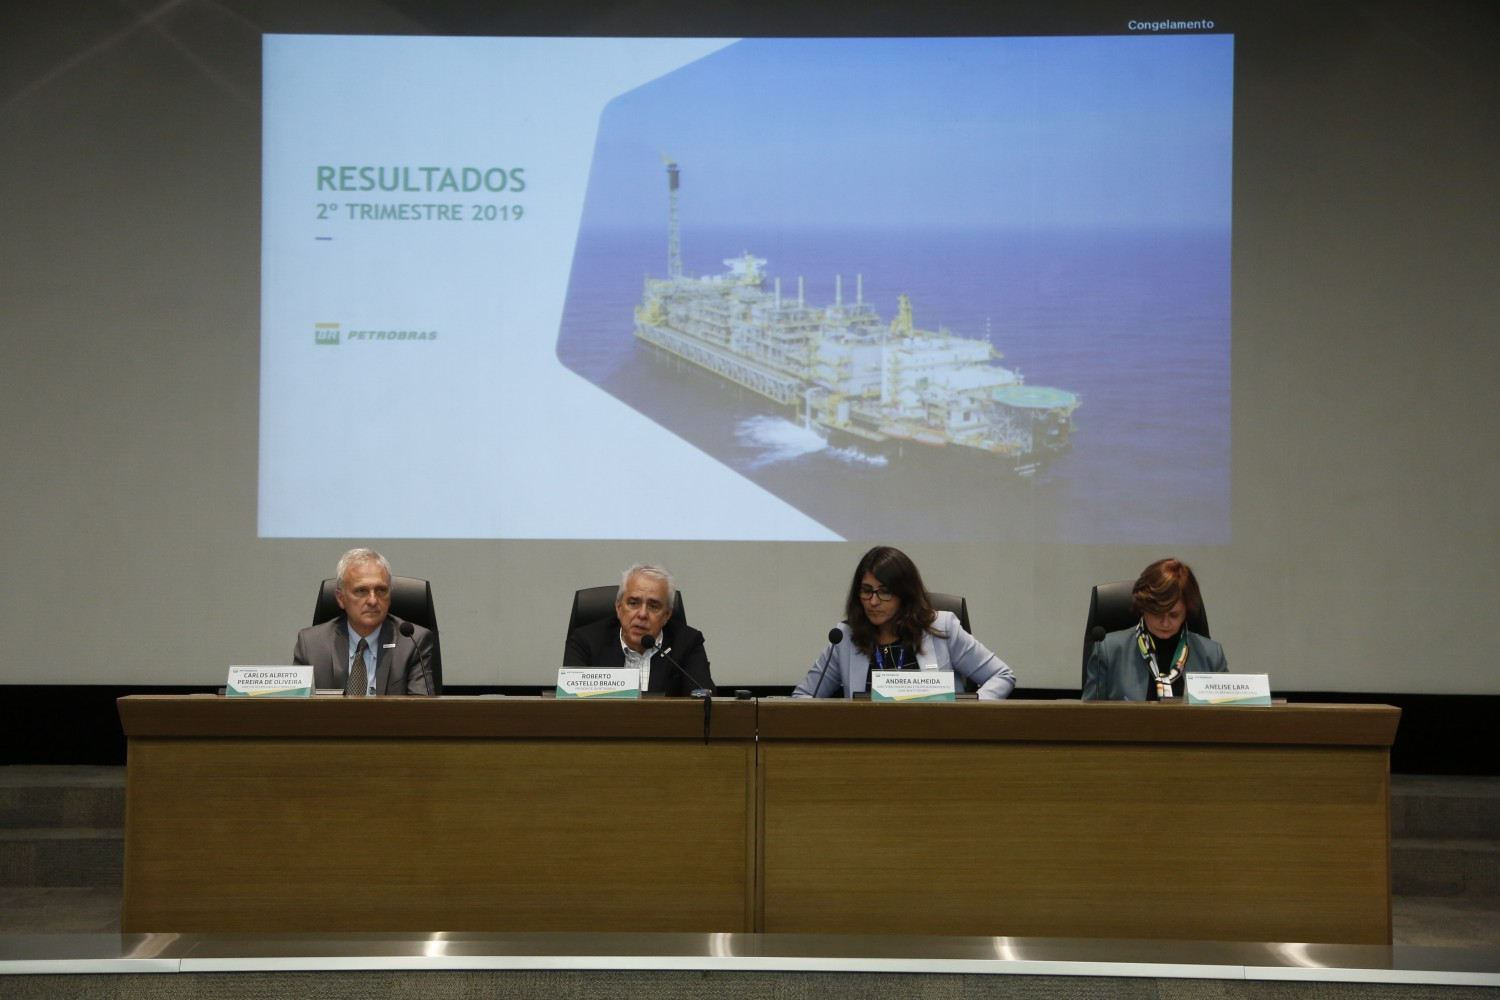 Petrobras aims to catch up to its peers